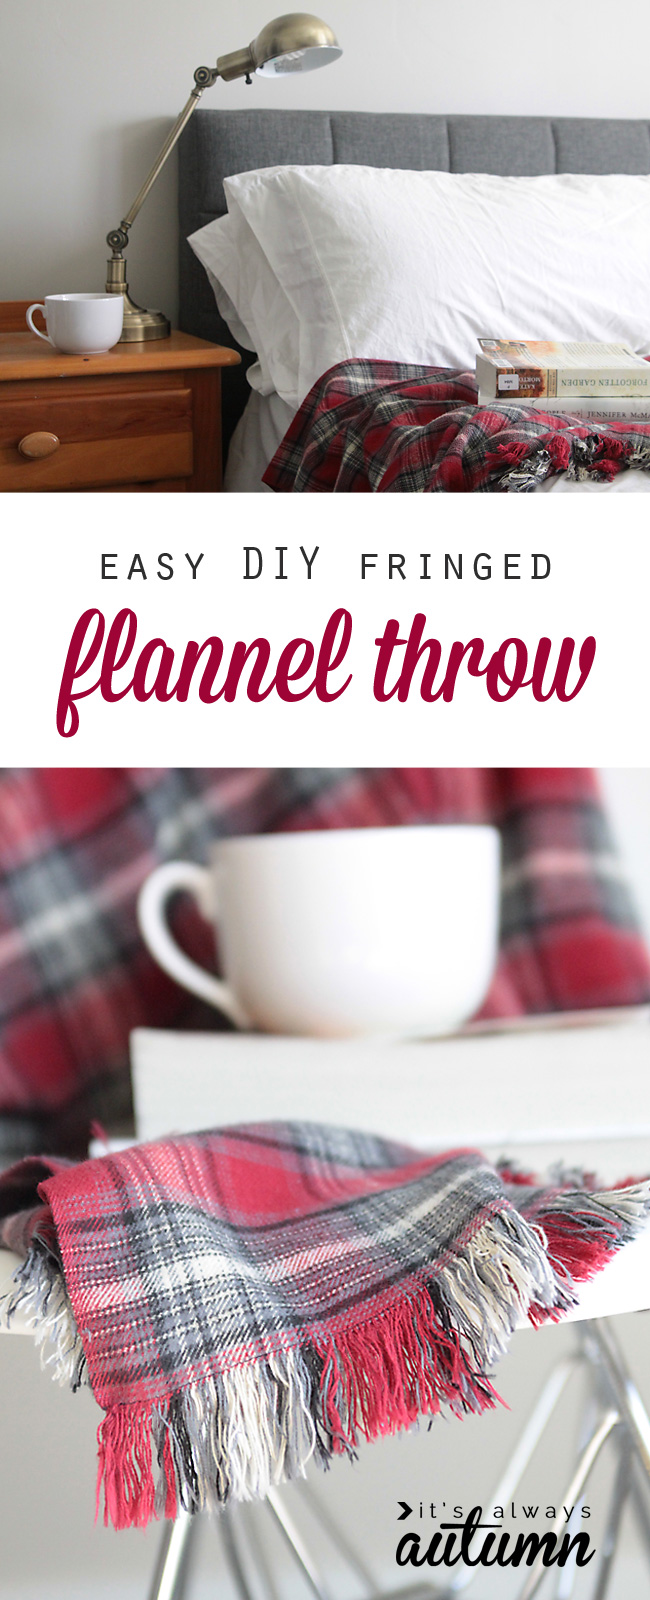 how to fringe flannel throw